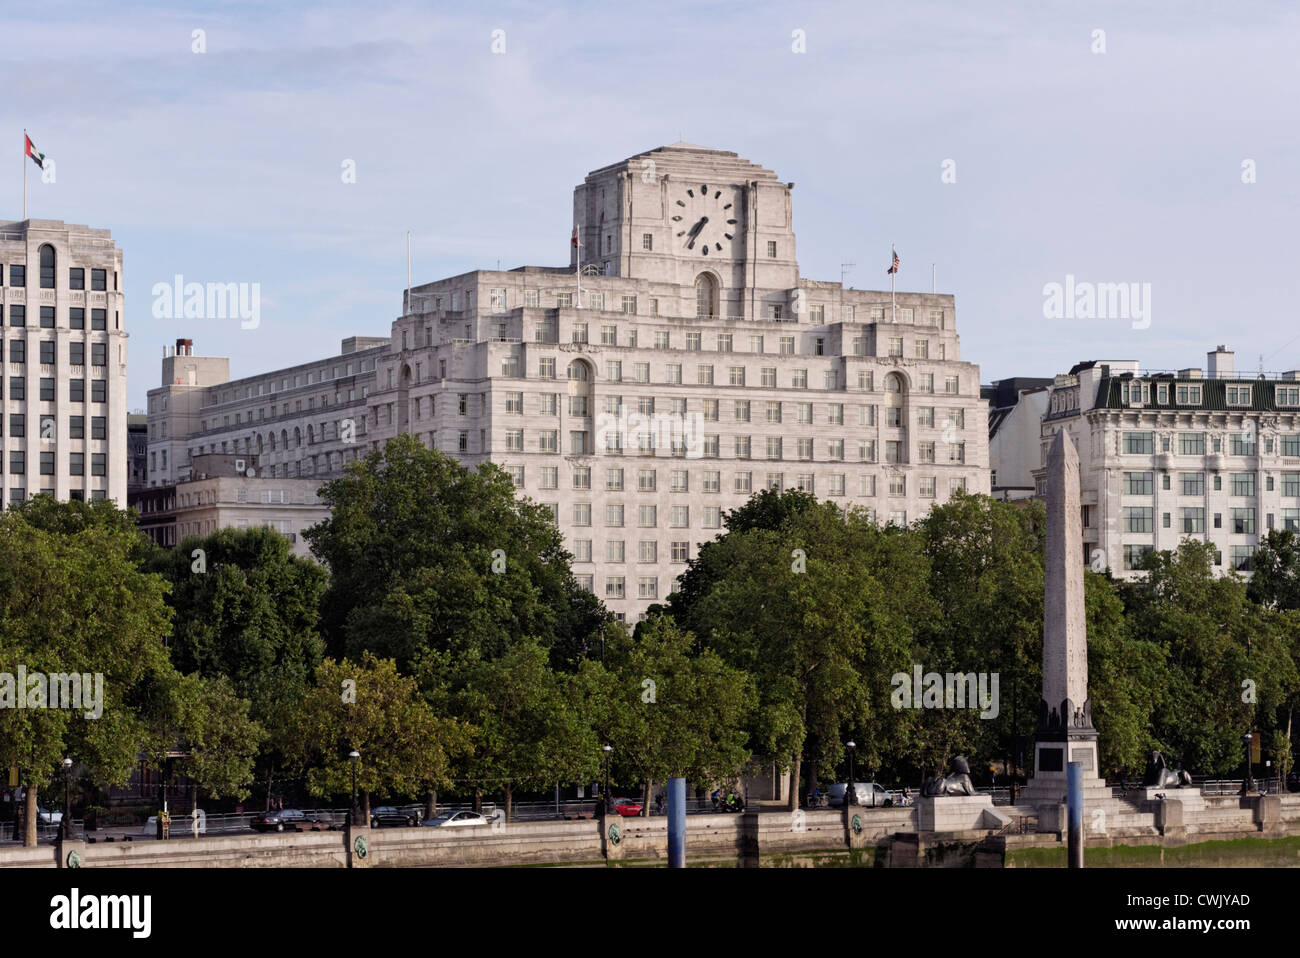 shell mex house at 80 strand london a landmark art deco building